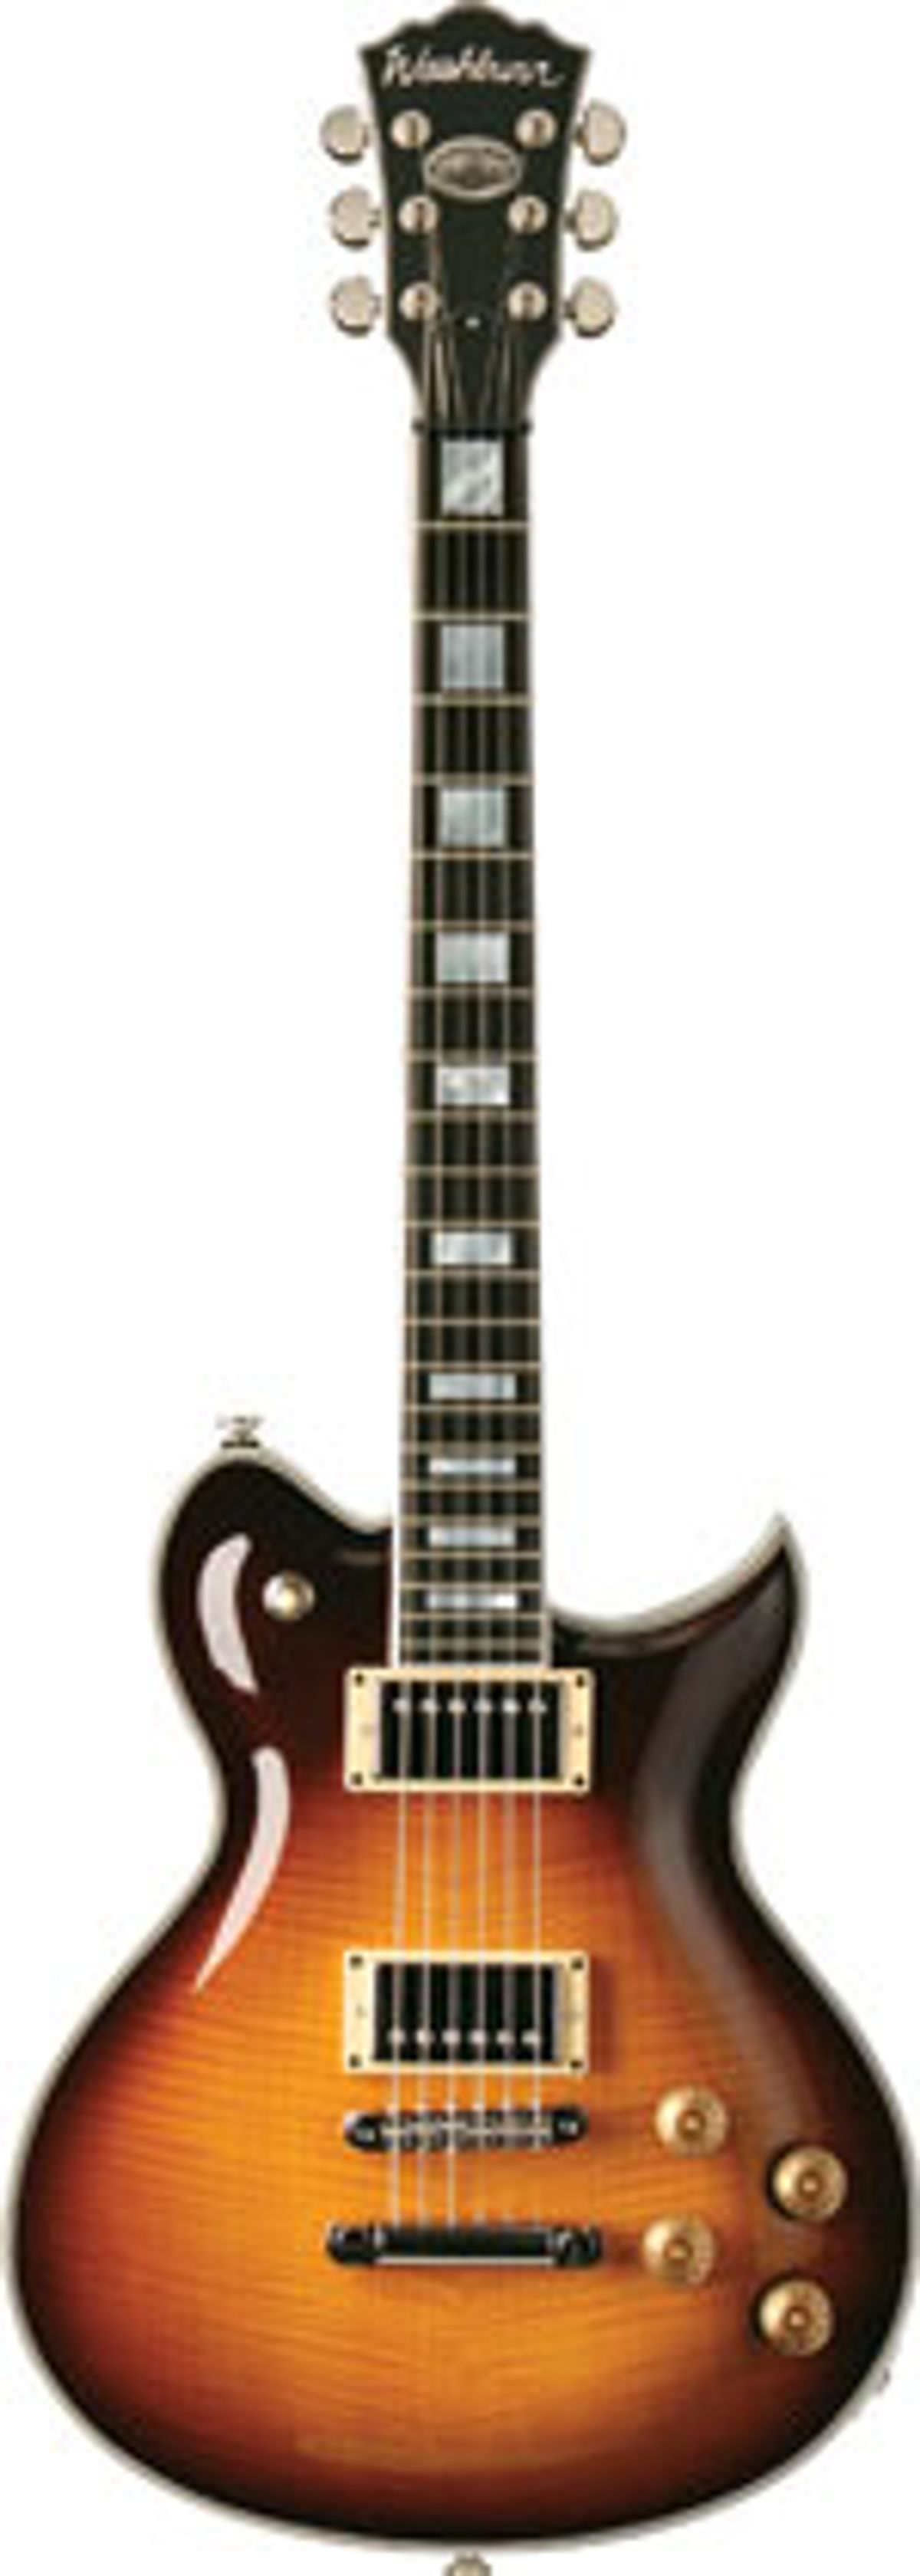 Washburn Guitars Introduces the WI595 from the Idol Series